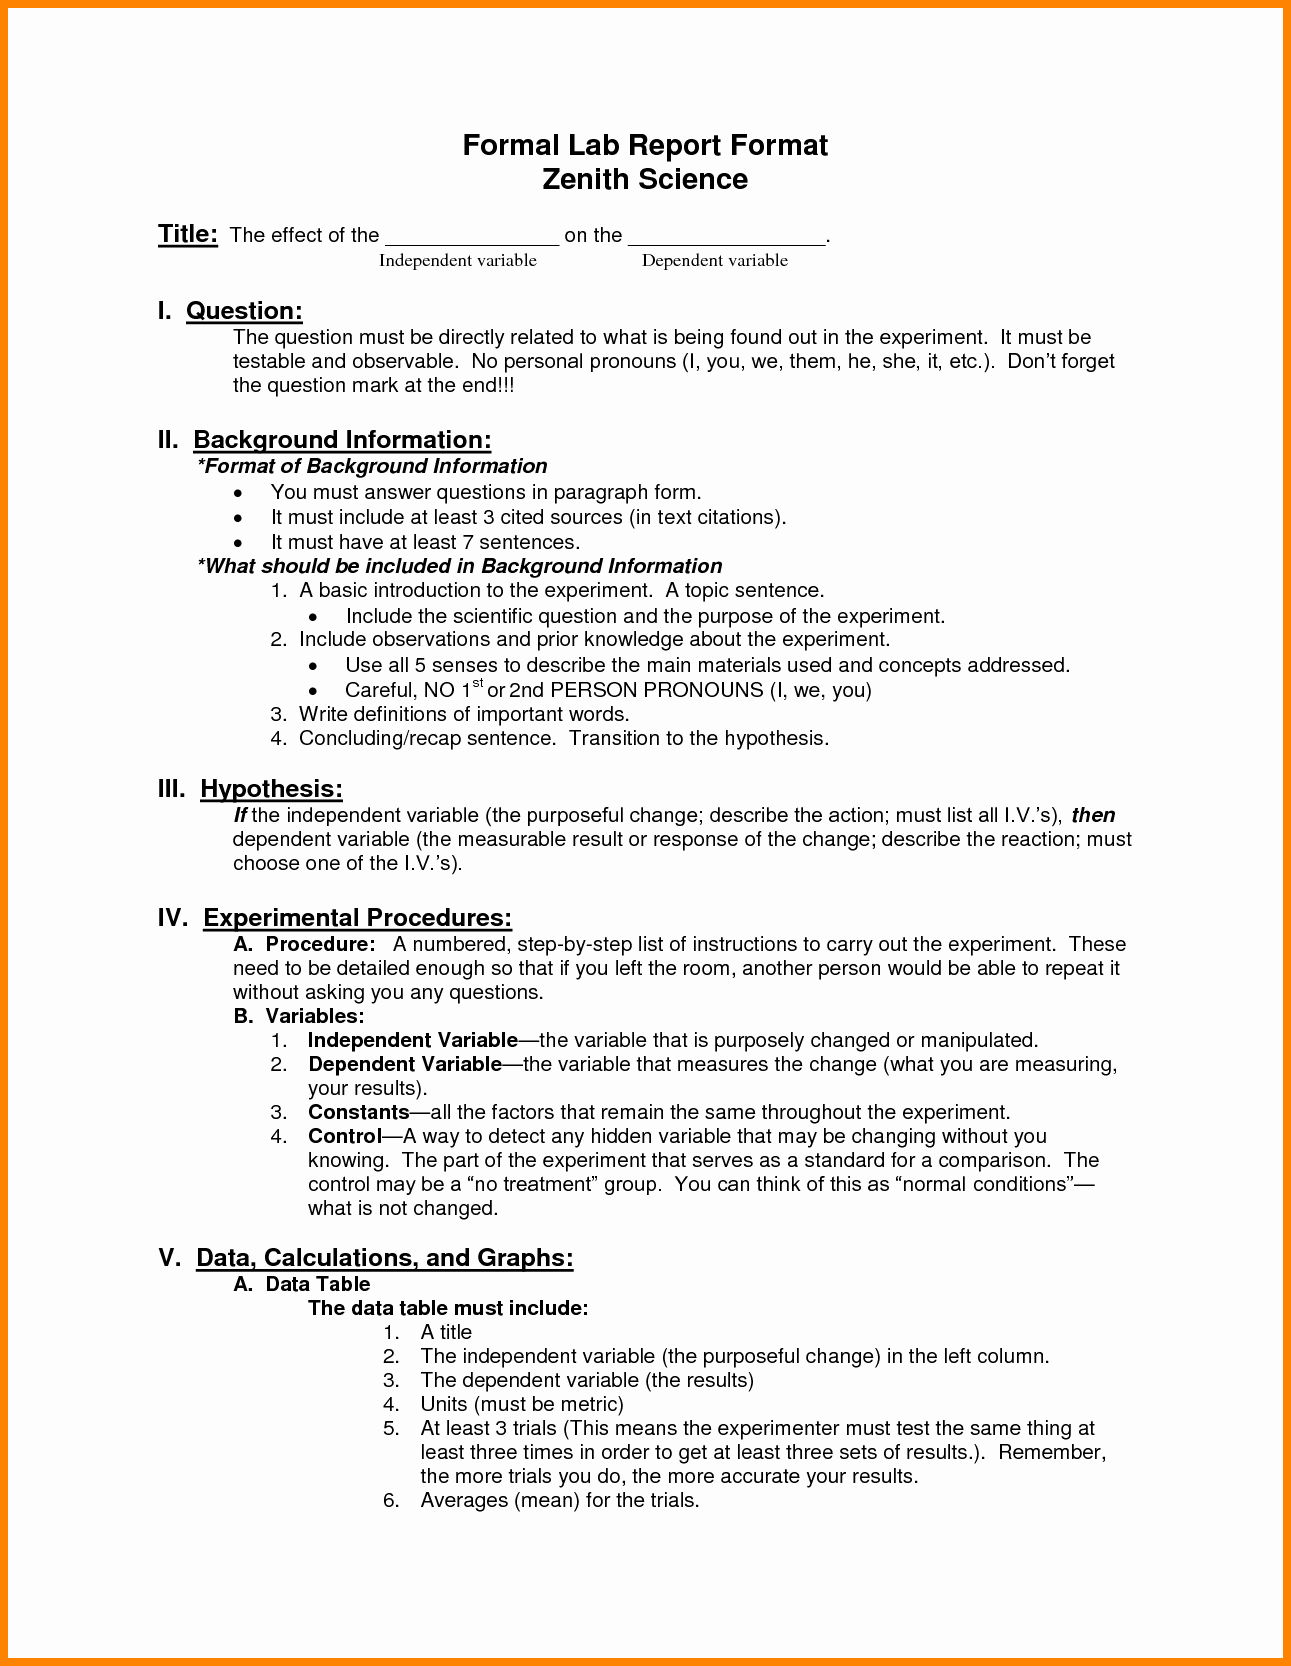 Formal Lab Report Template Inspirational Lab Report format